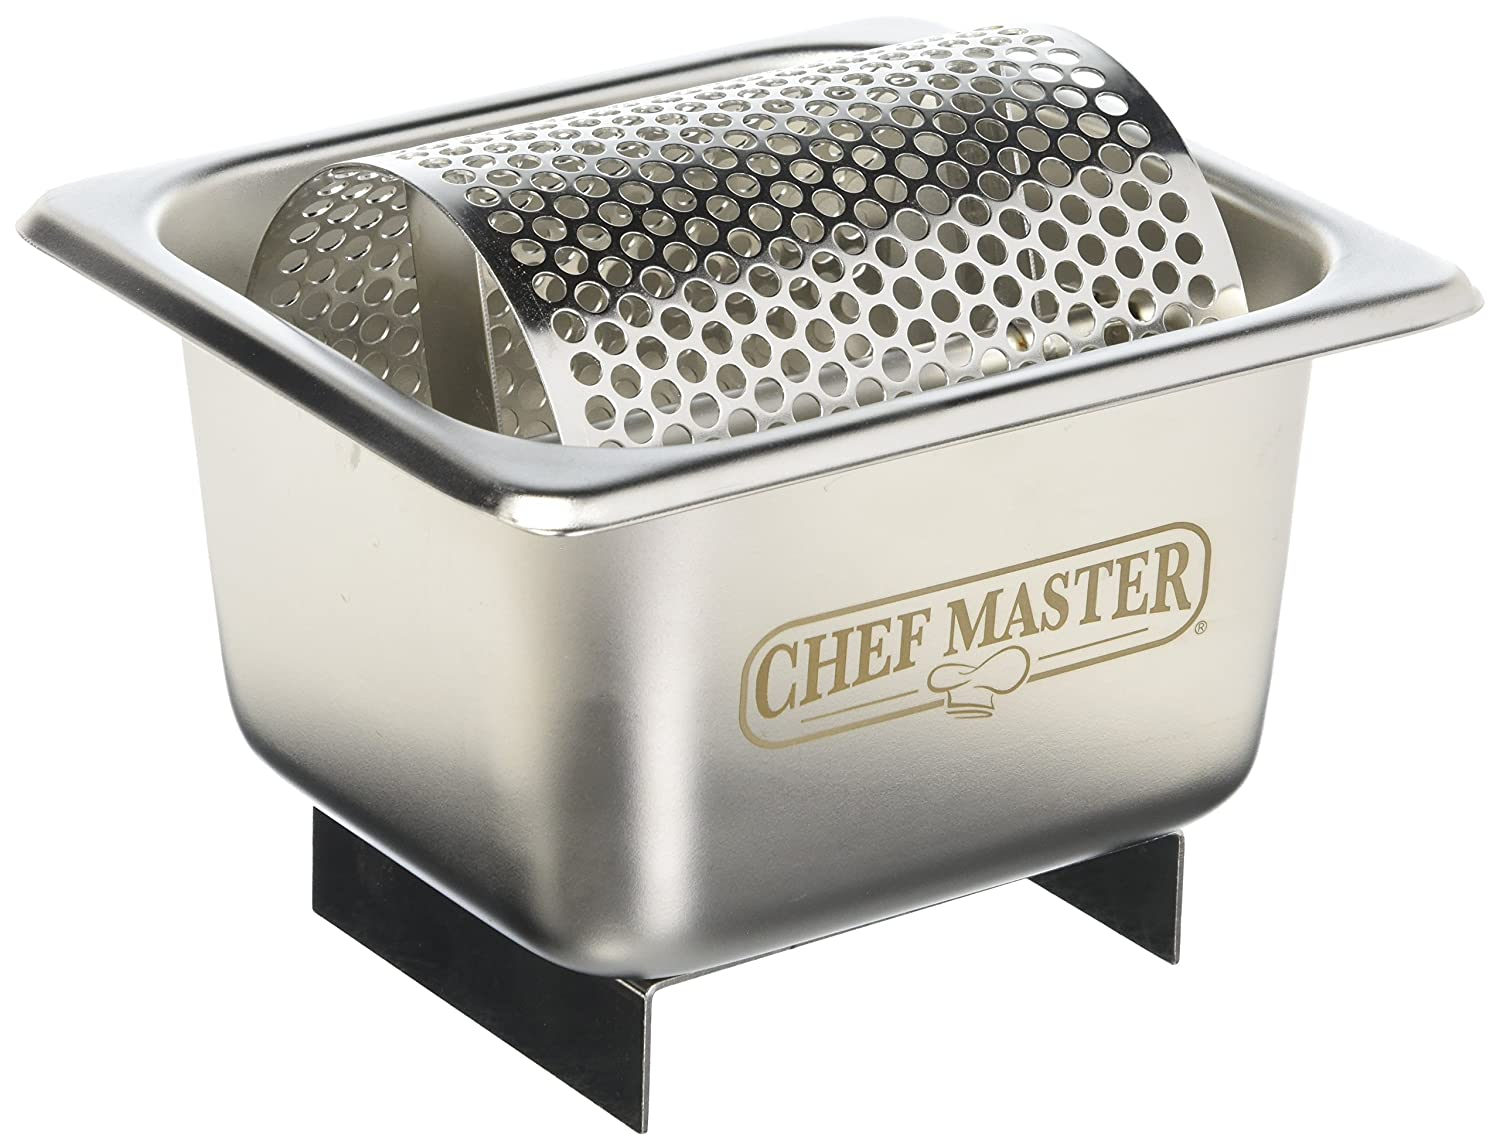 Chef-Master 90021 Stainless Steel Butter Spreader, Silver